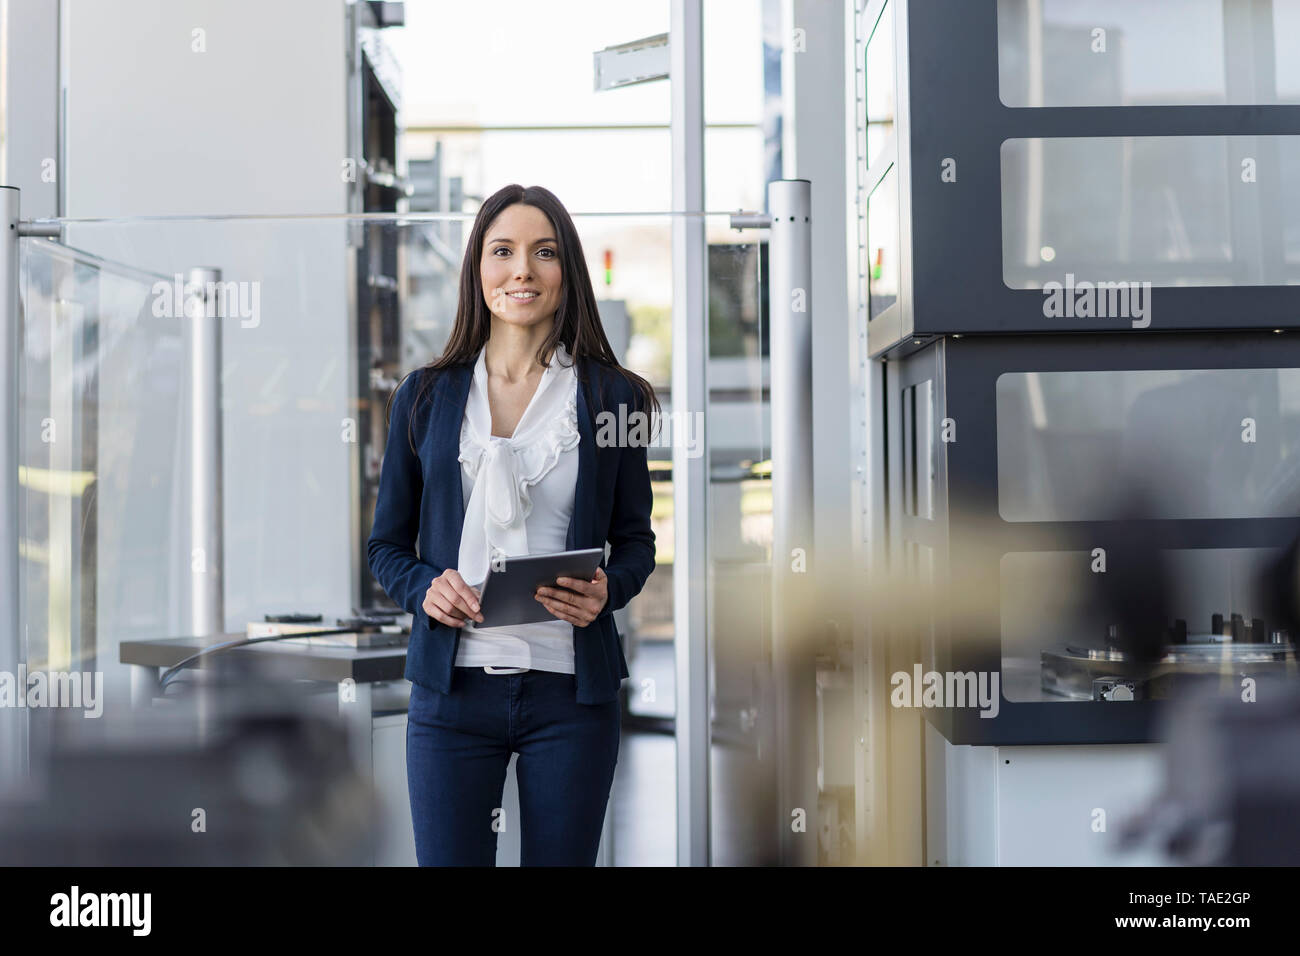 Smiling businesswoman with tablet in a modern factory - Stock Image